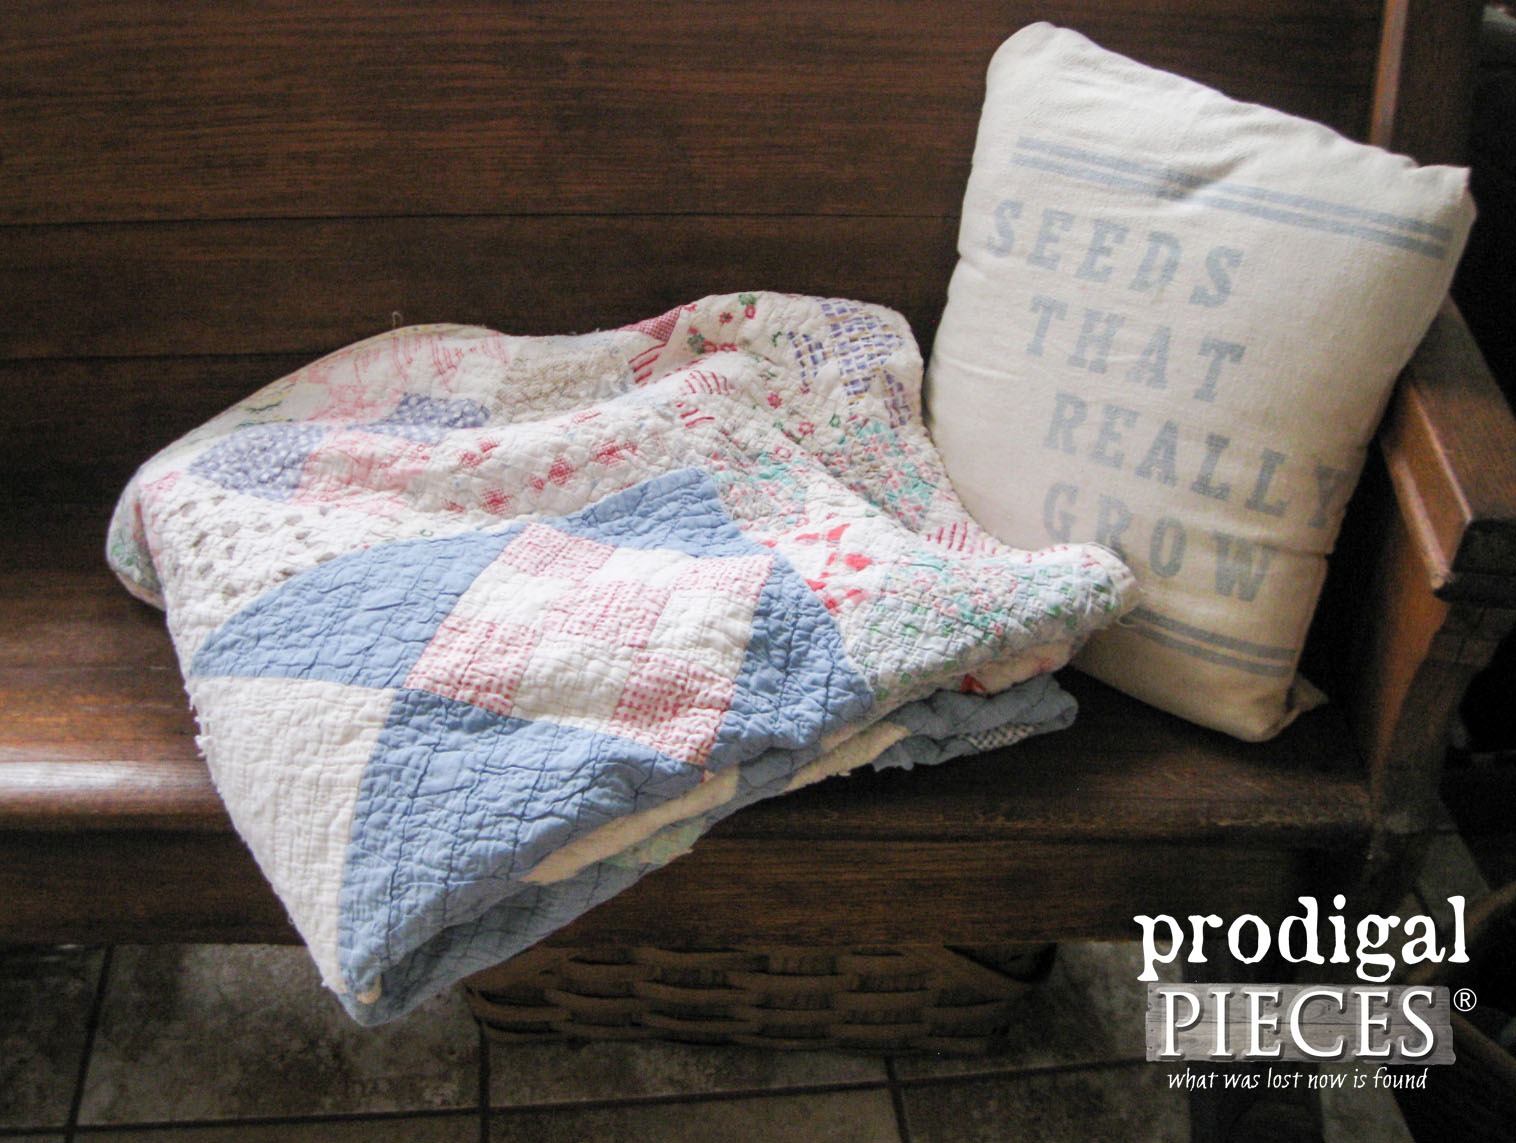 Worn out Handmade Quilt becomes Upcycled Christmas Decor | Prodigal Pieces | www.prodigalpieces.com